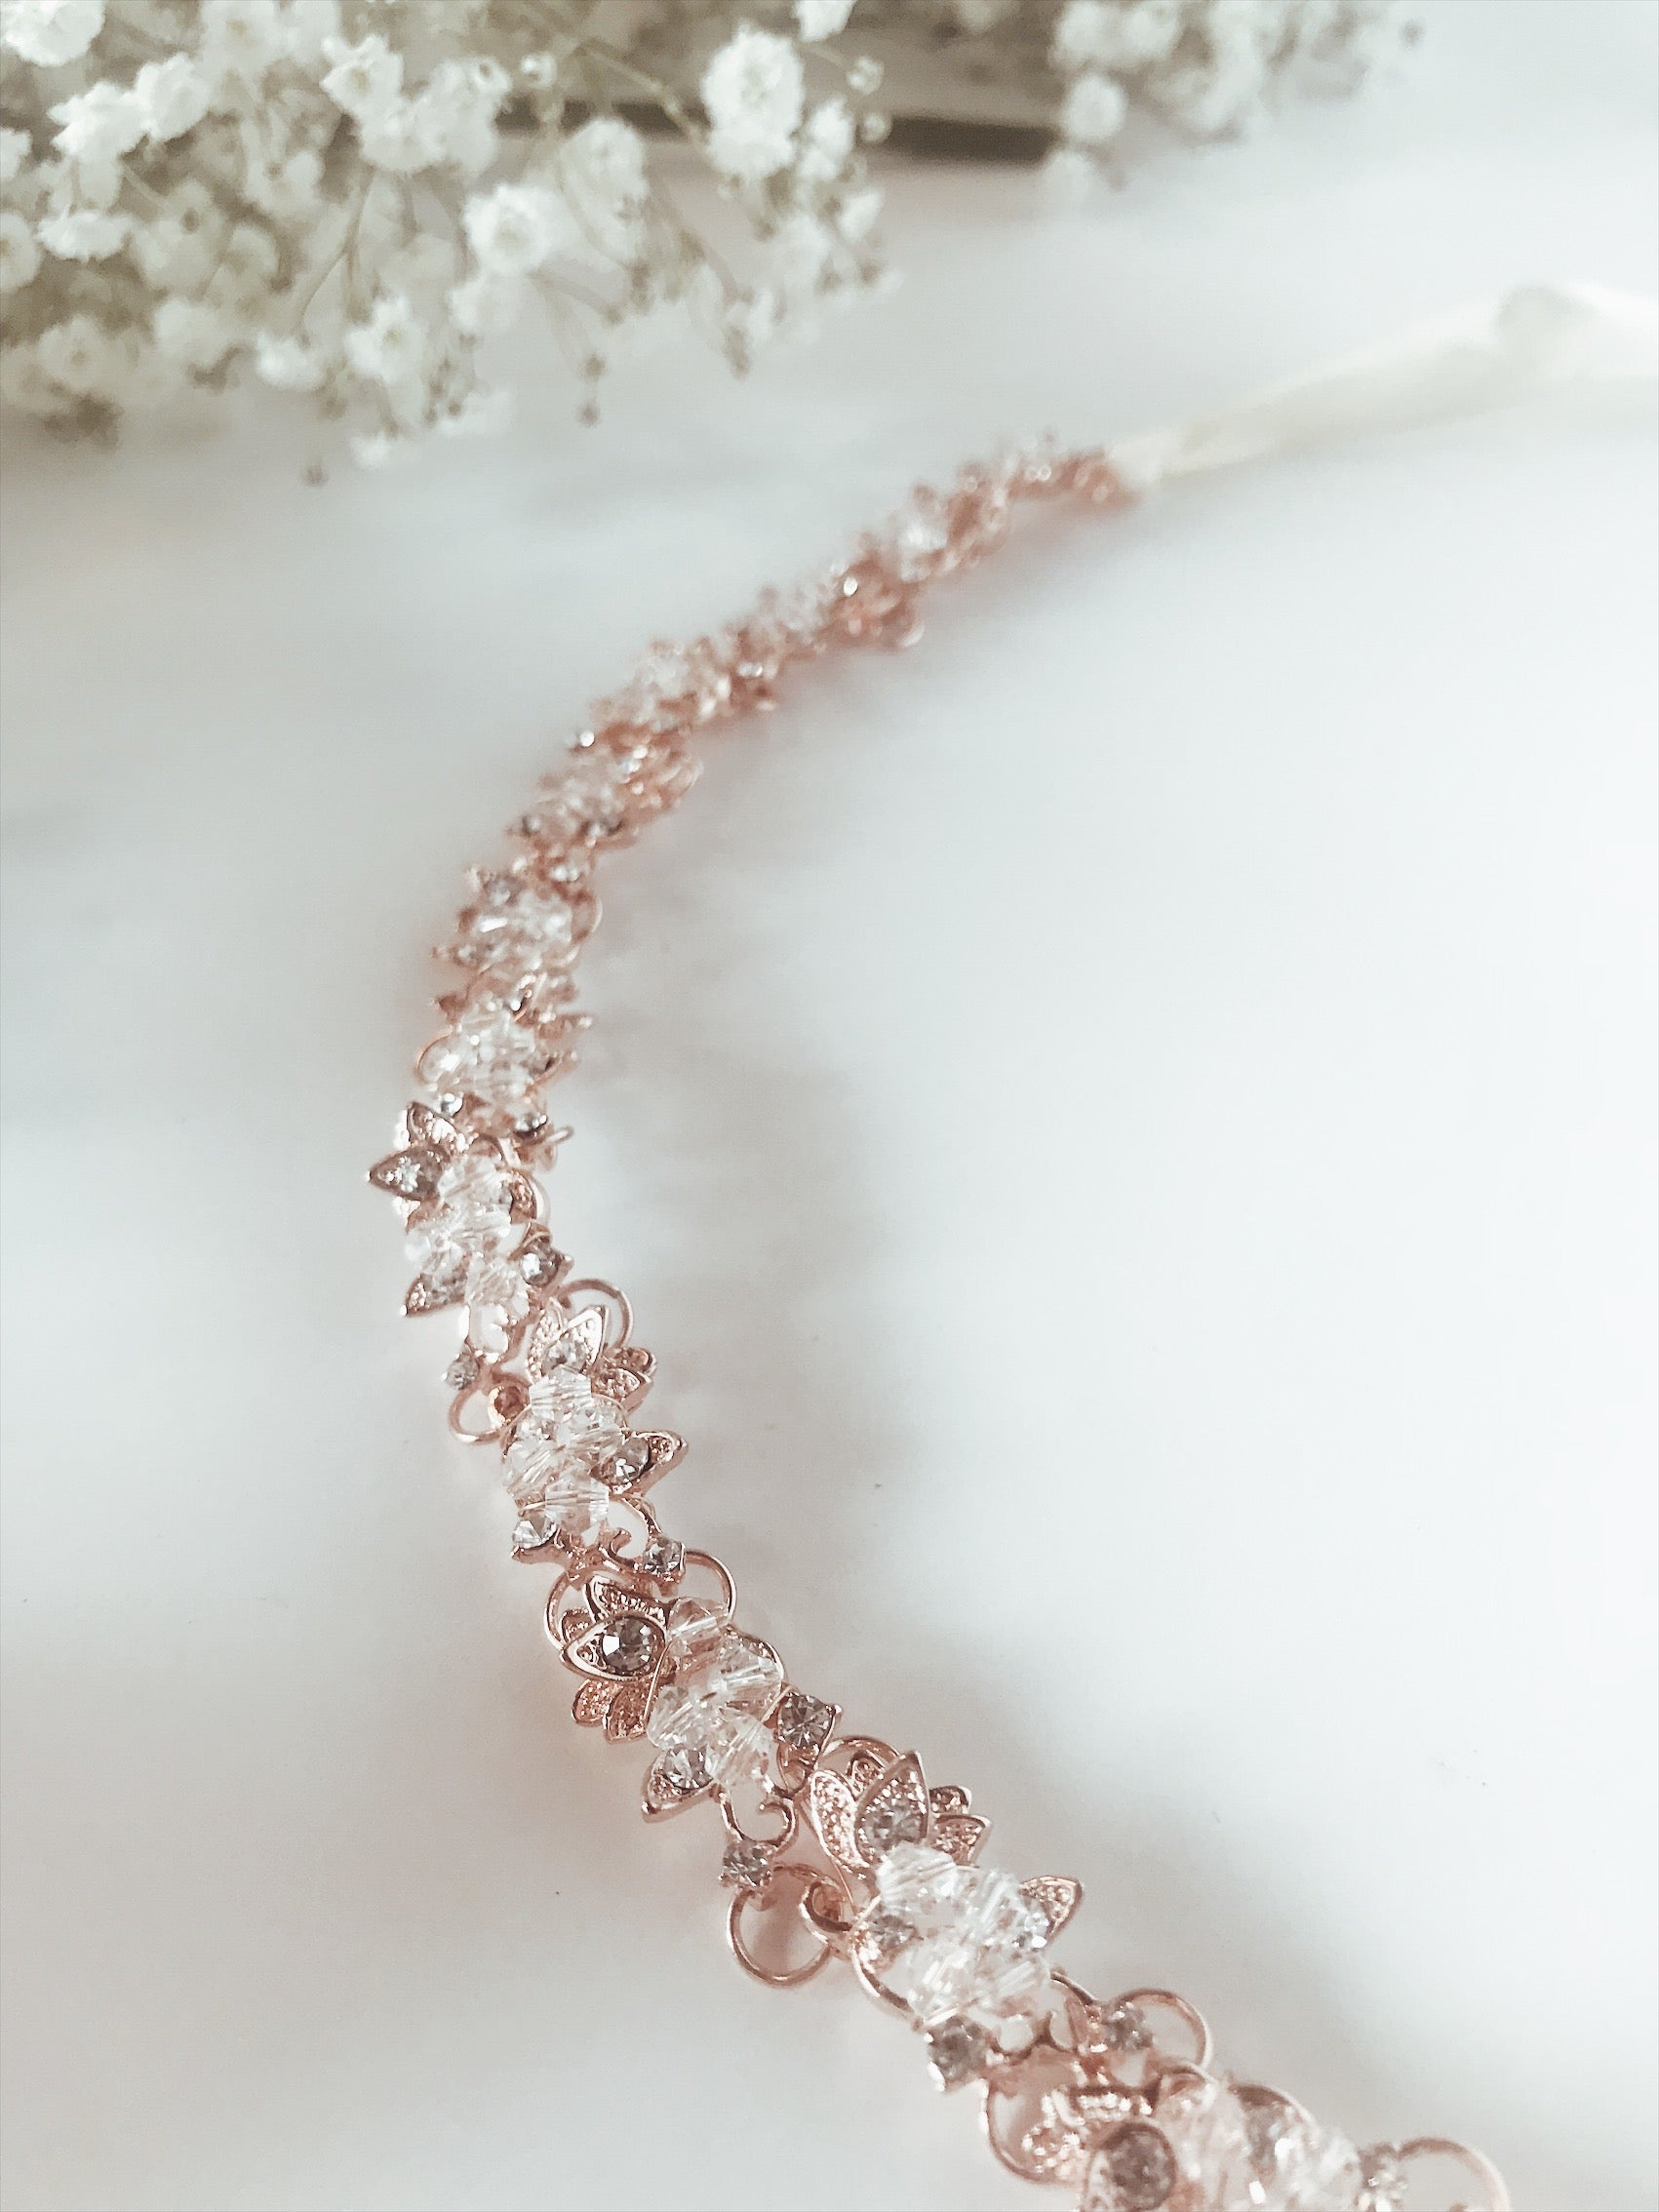 Rose gold and pave crystal bridal hair vine with ribbon ties by Lauren Elaine Bridal Accessories